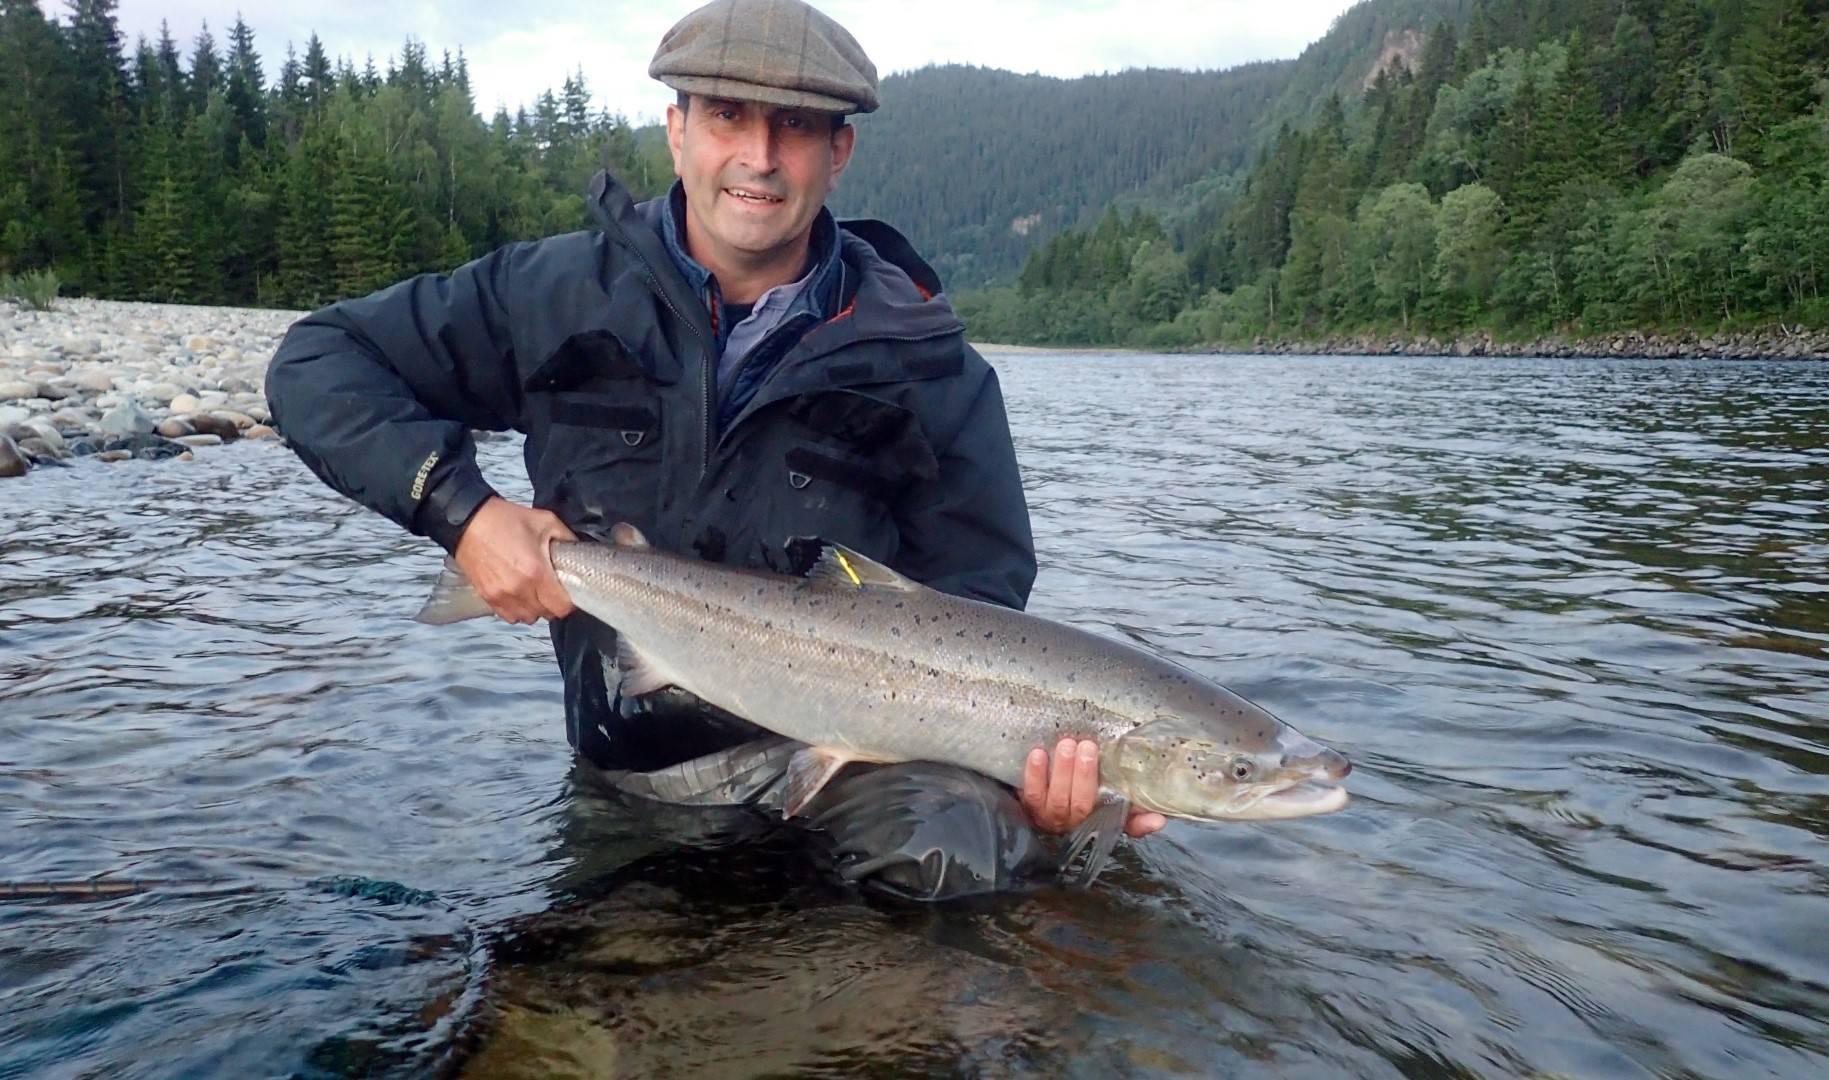 Bruce with his tagged salmon